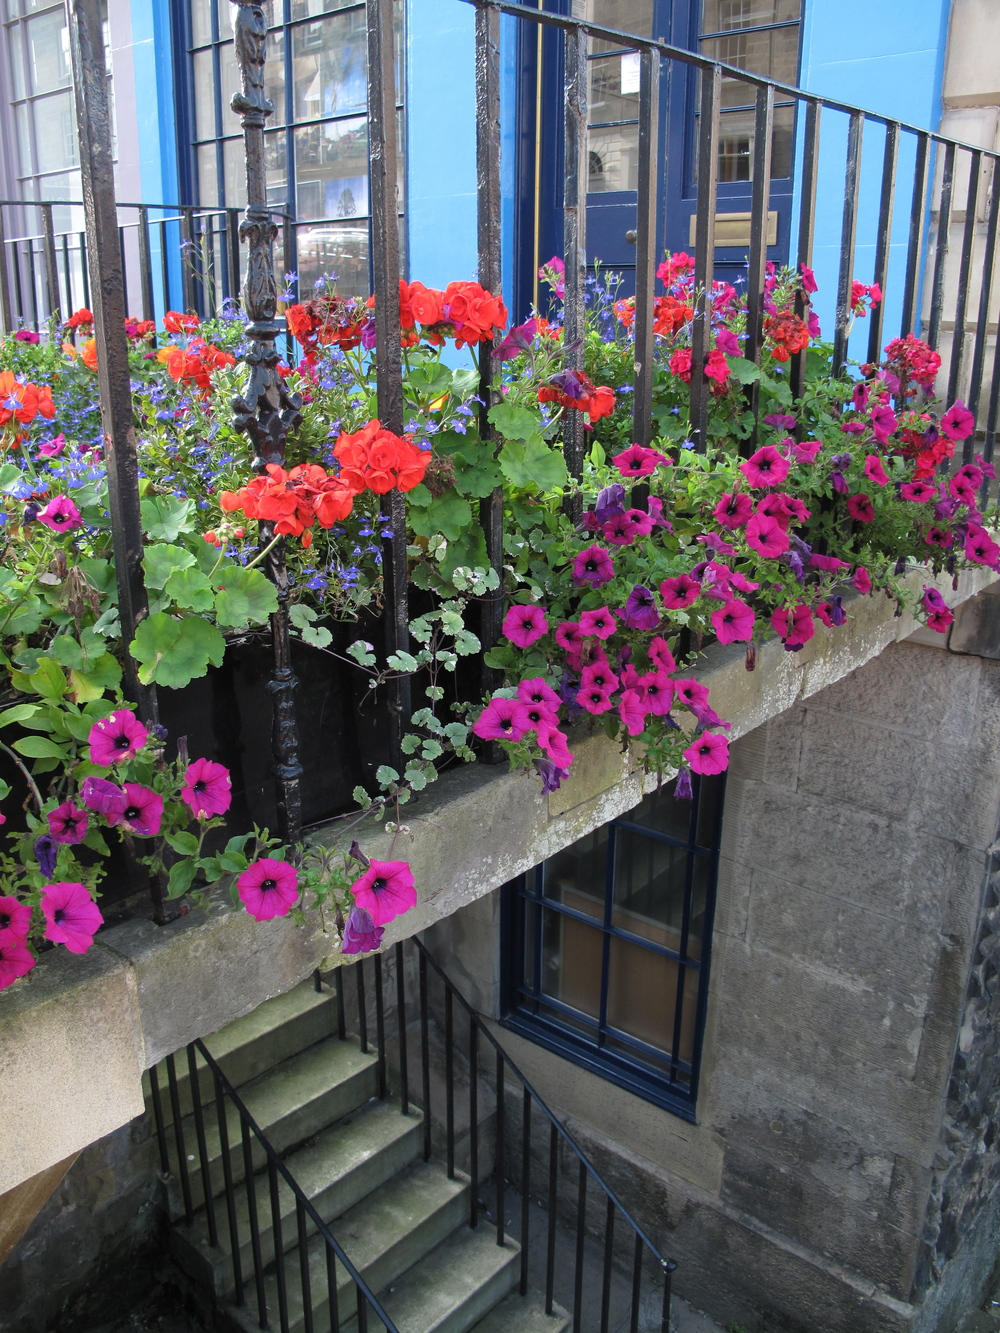 Flowers in New Town, on steps leading to apartments. Edinburgh.